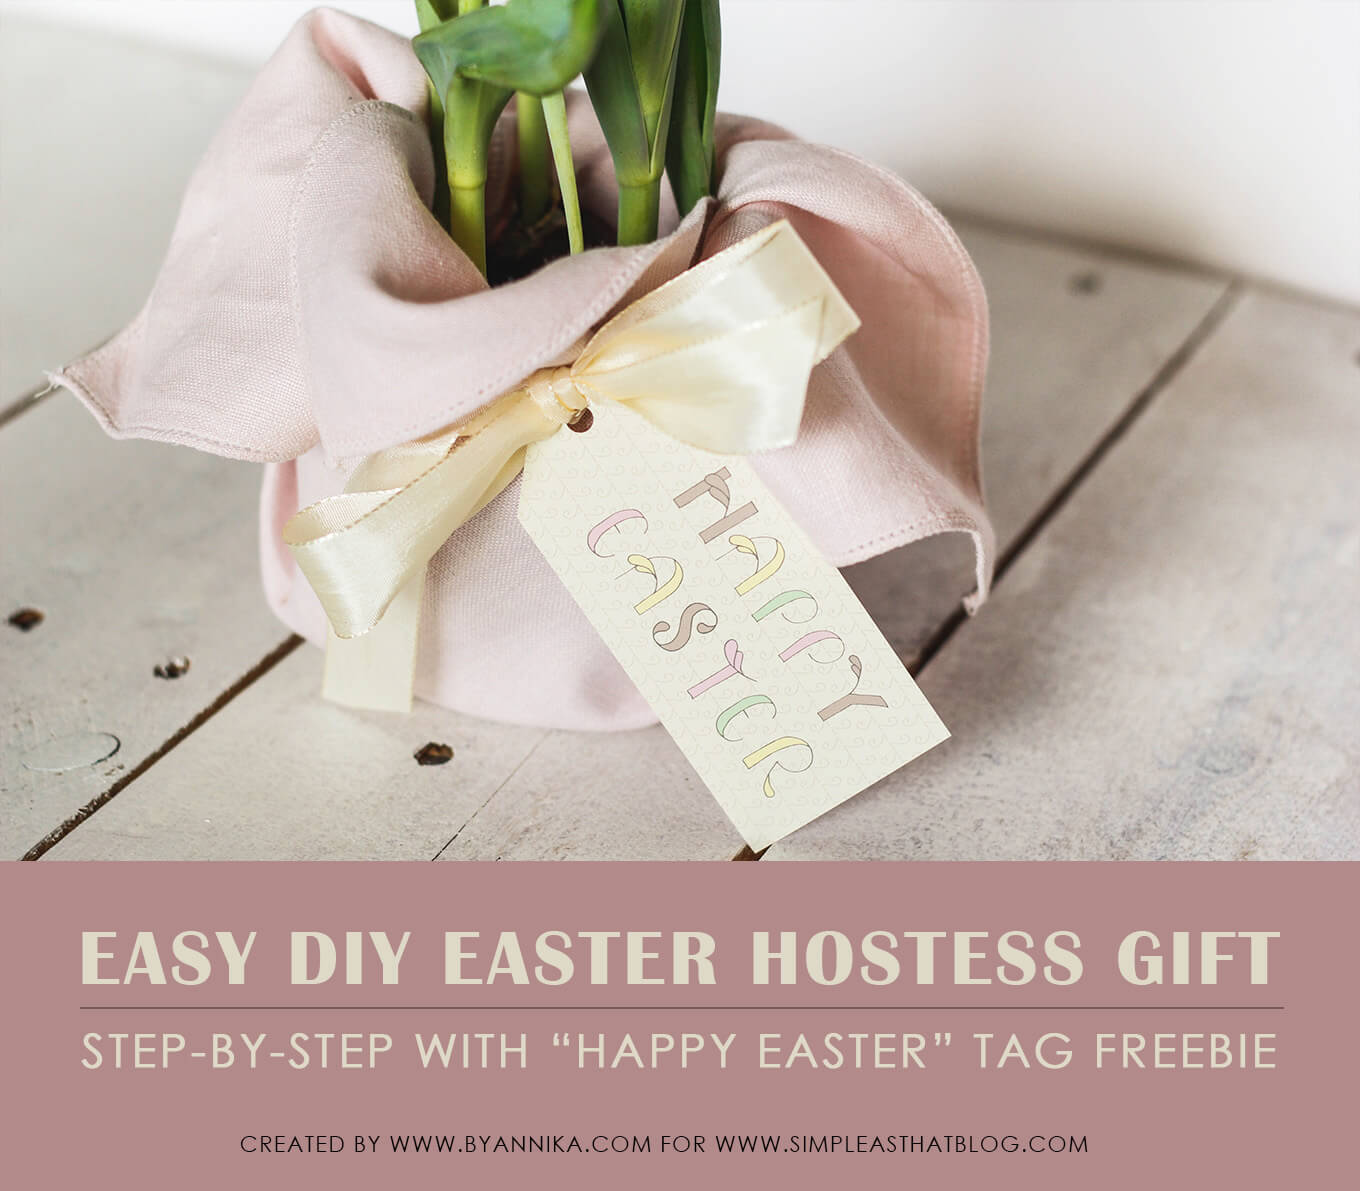 How to create a super quick last minute easter hostess gift this little gift consists basically of dressing up a flower in a pot with some fabric and adding a cute tag but one of the criteria for being able to negle